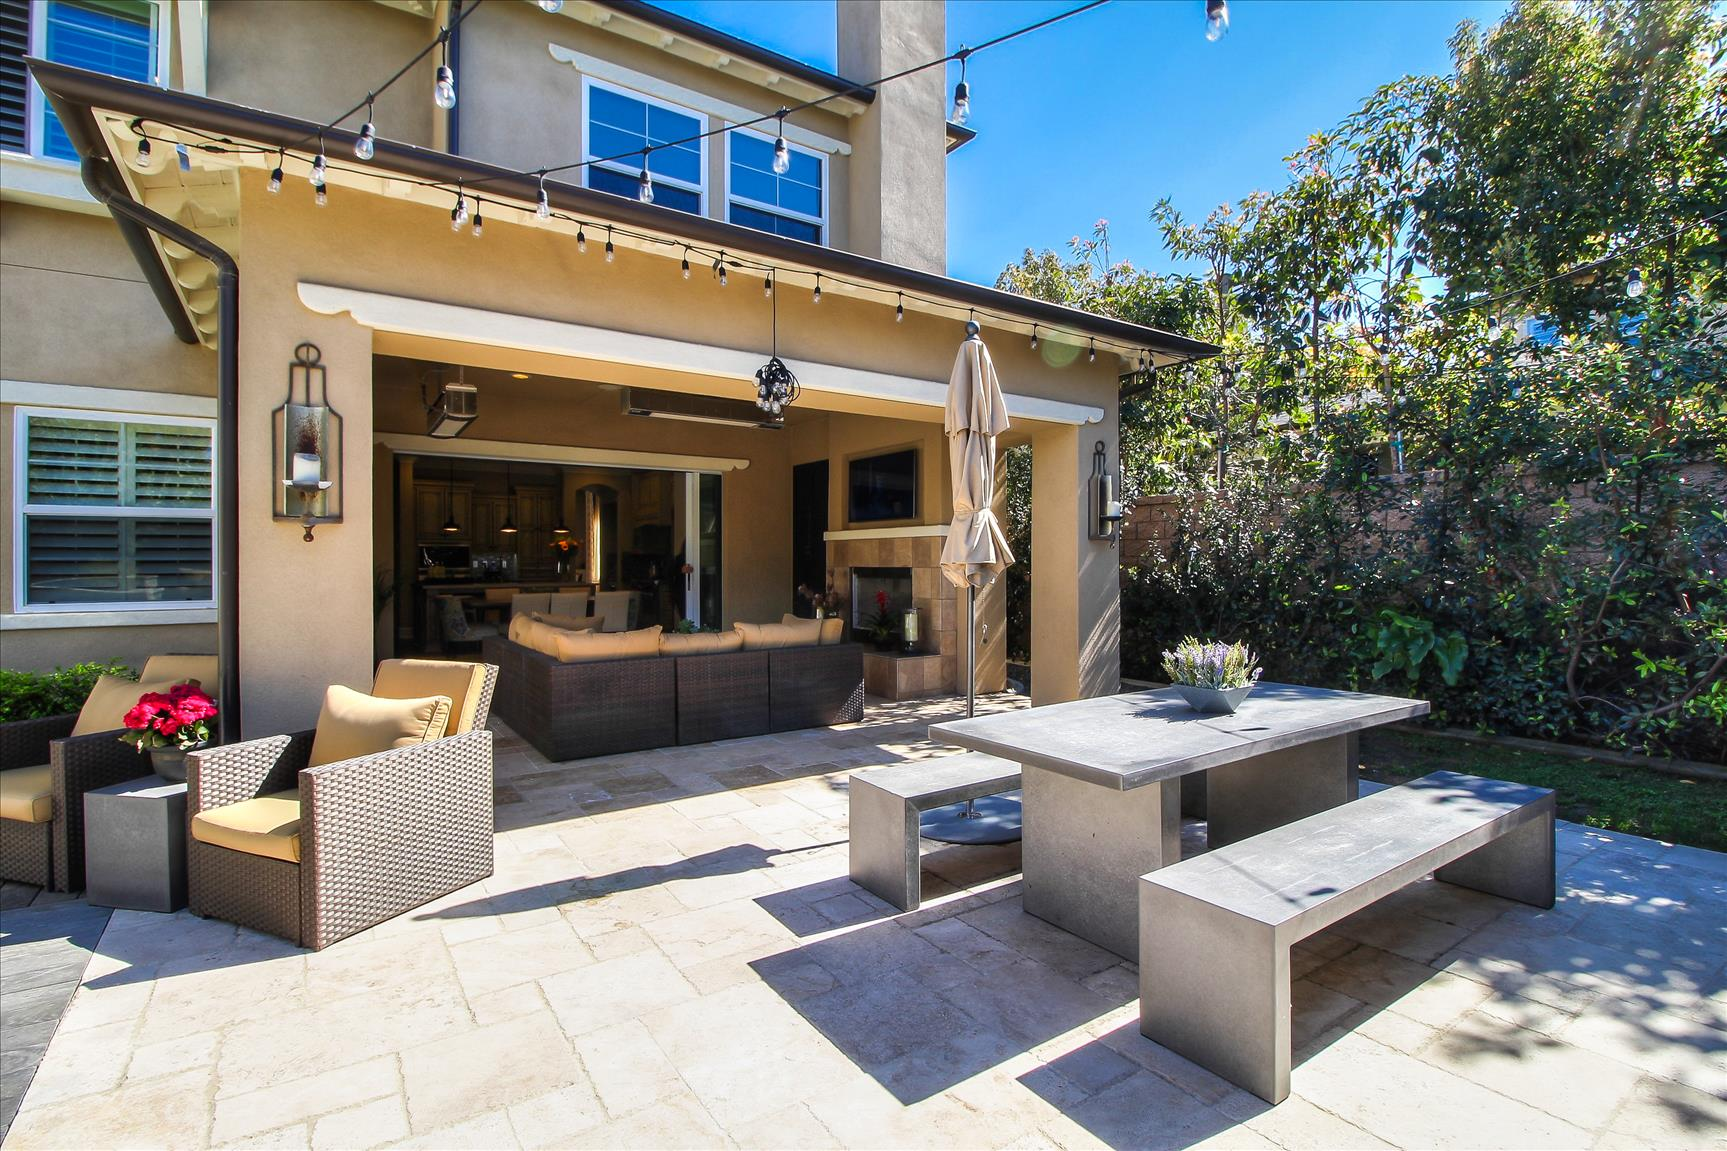 17471 Kennebunk Ln, Huntington Beach, CA  9264979.jpg